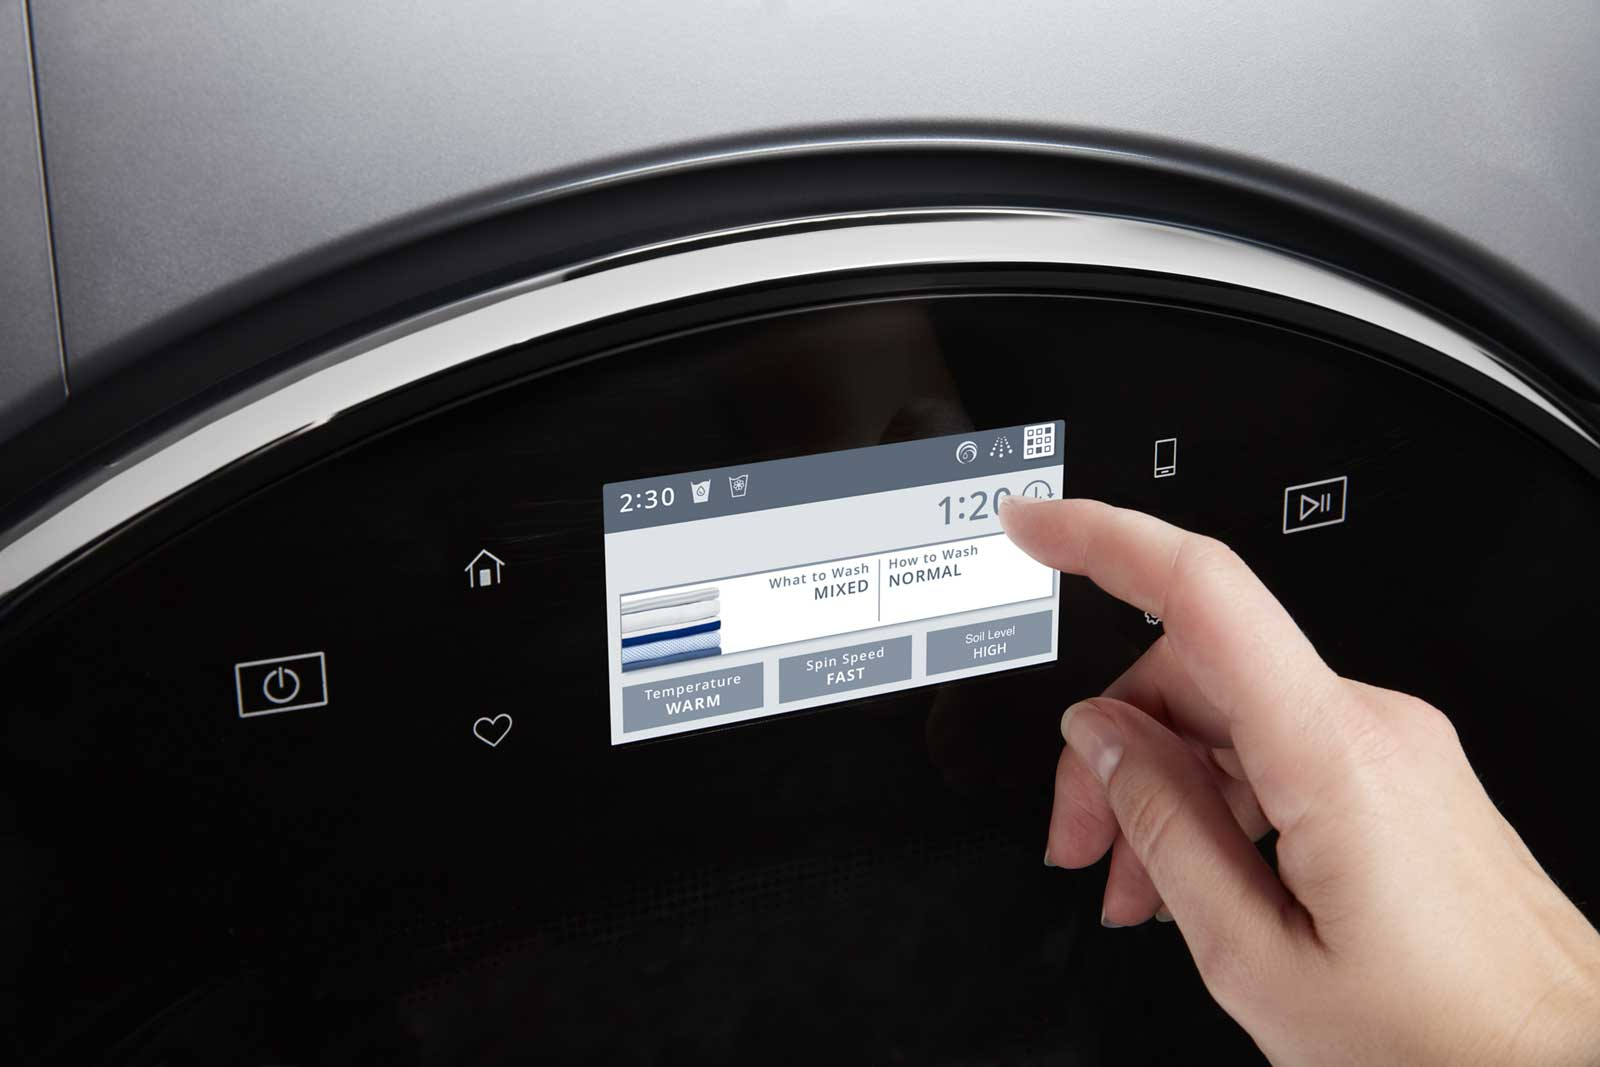 Intuitive Touch Screens on the Whirlpool® Smart Front Load Pair guide you to the correct washer and dryer presets and hold up to 35 pre-programmed cycles to keep your most used settings easily available.